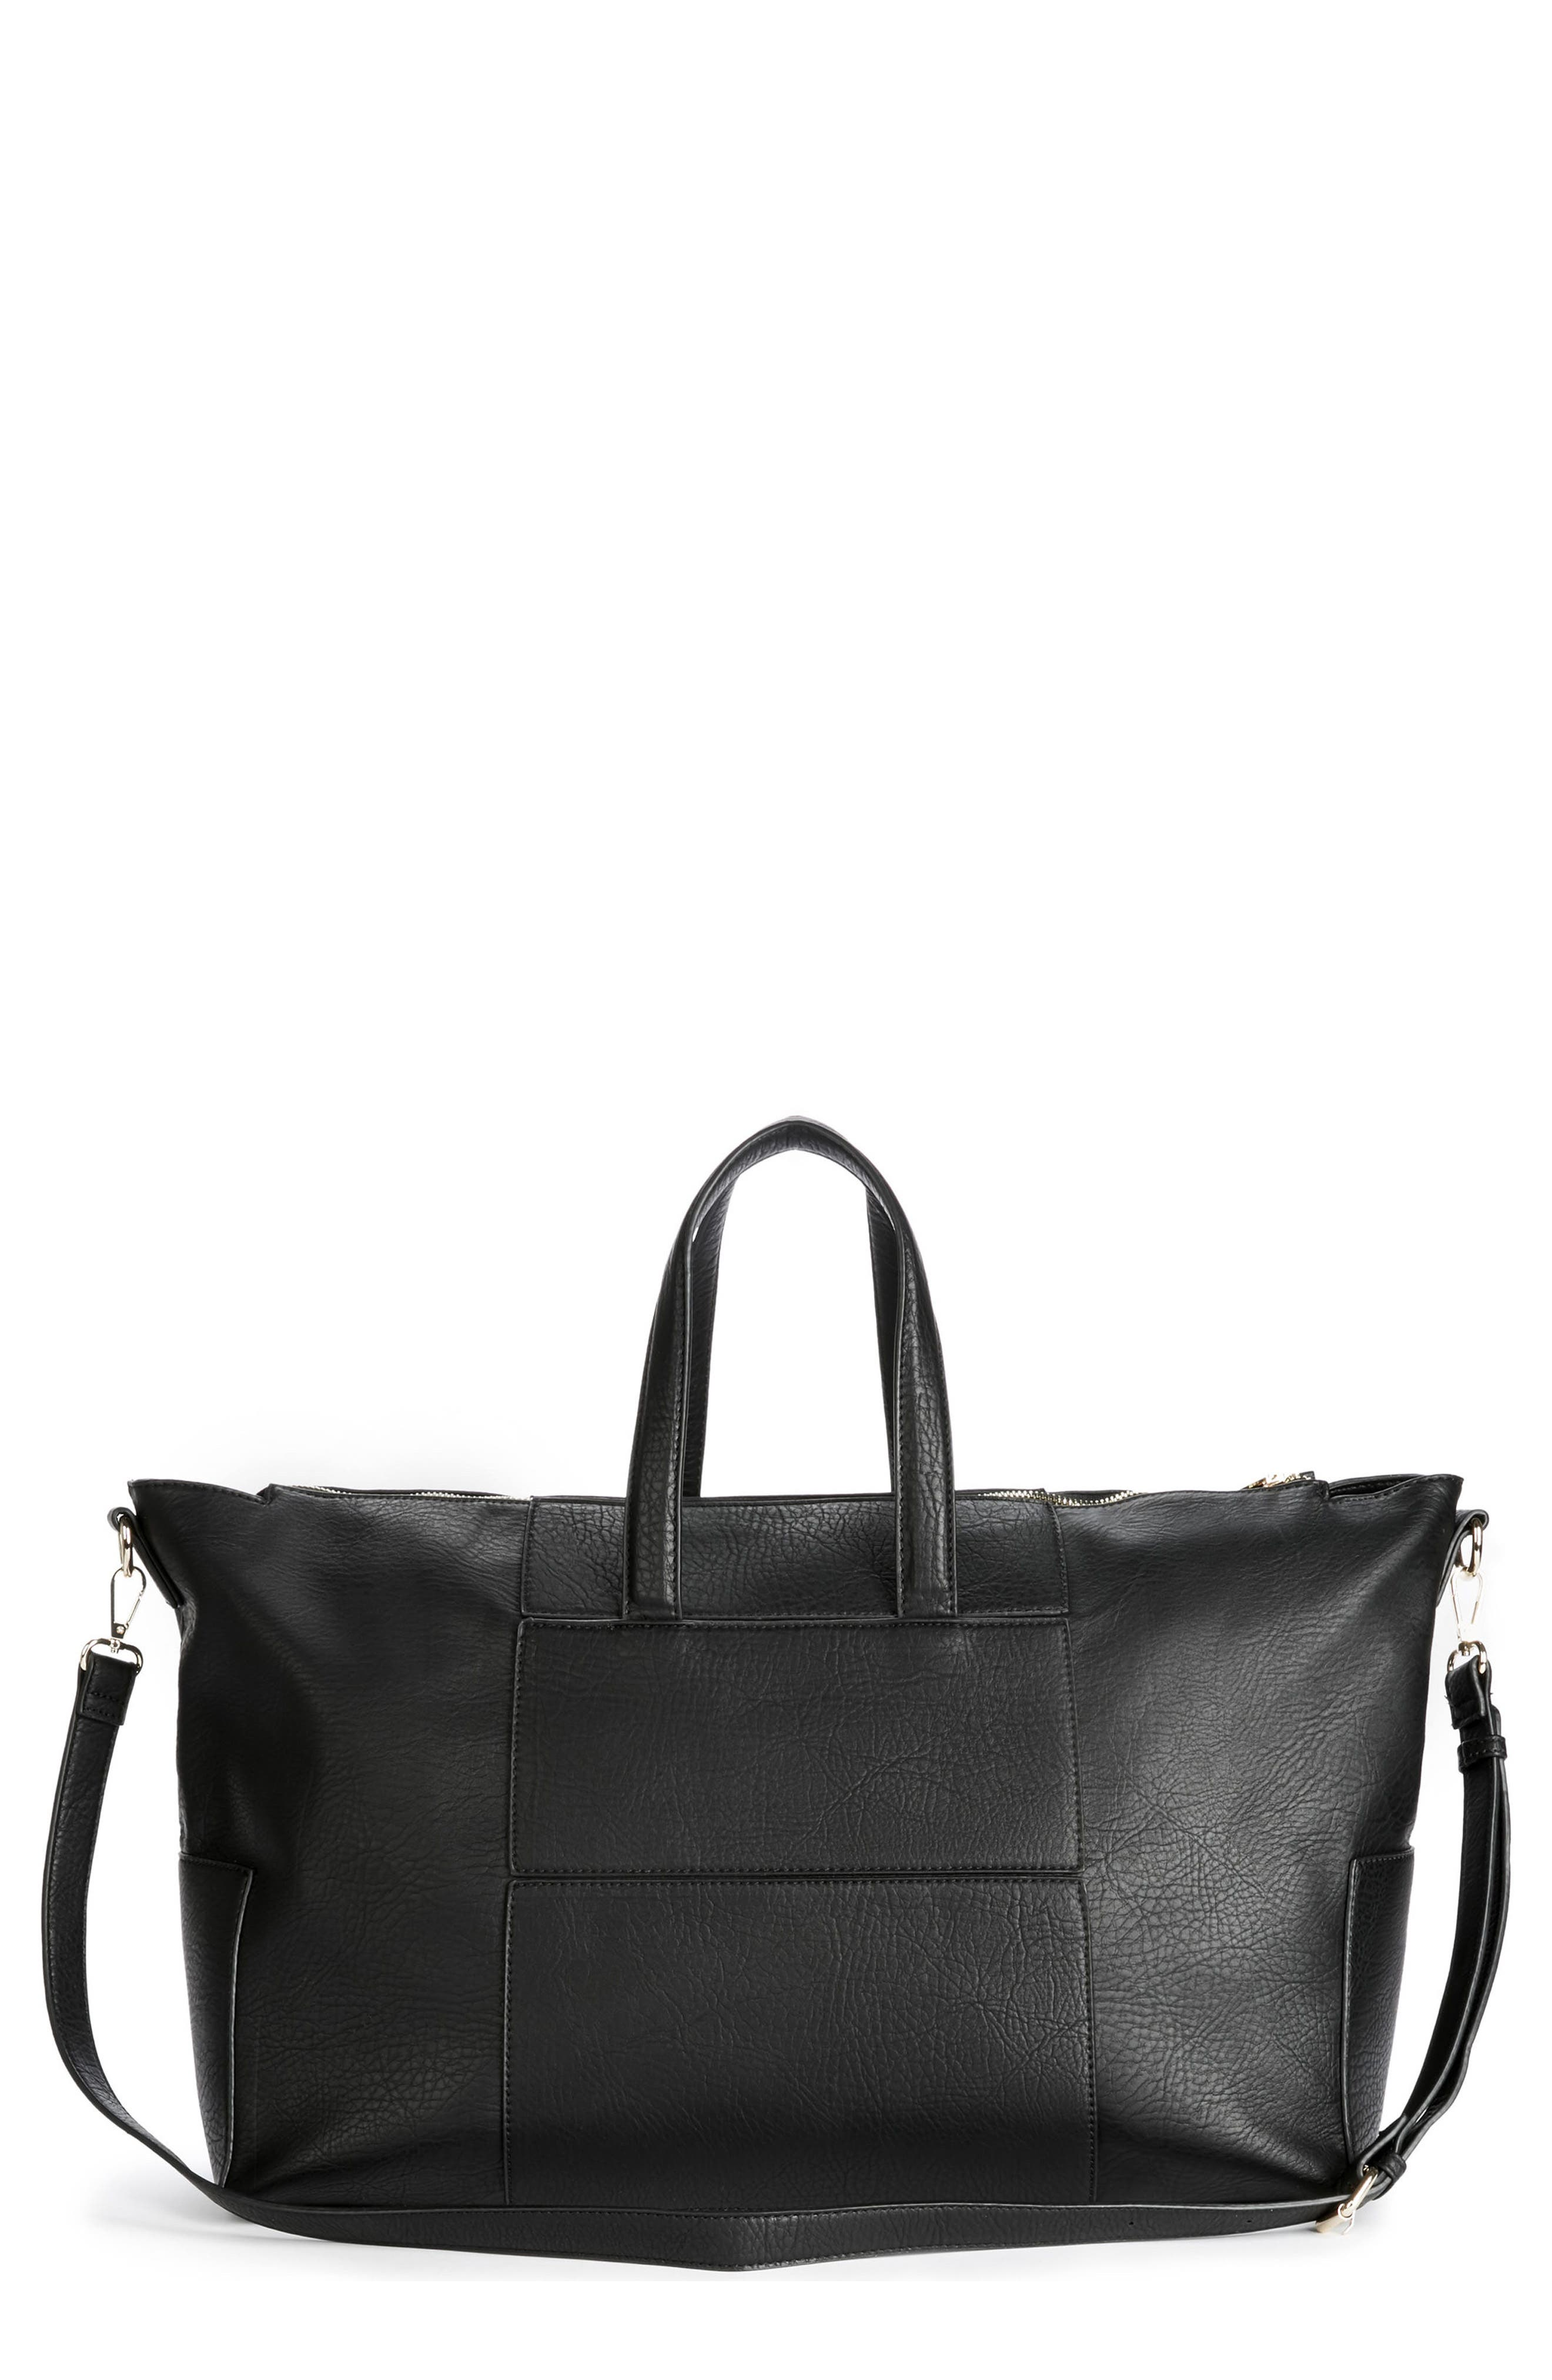 Cory Faux Leather Travel Tote,                             Main thumbnail 1, color,                             Black